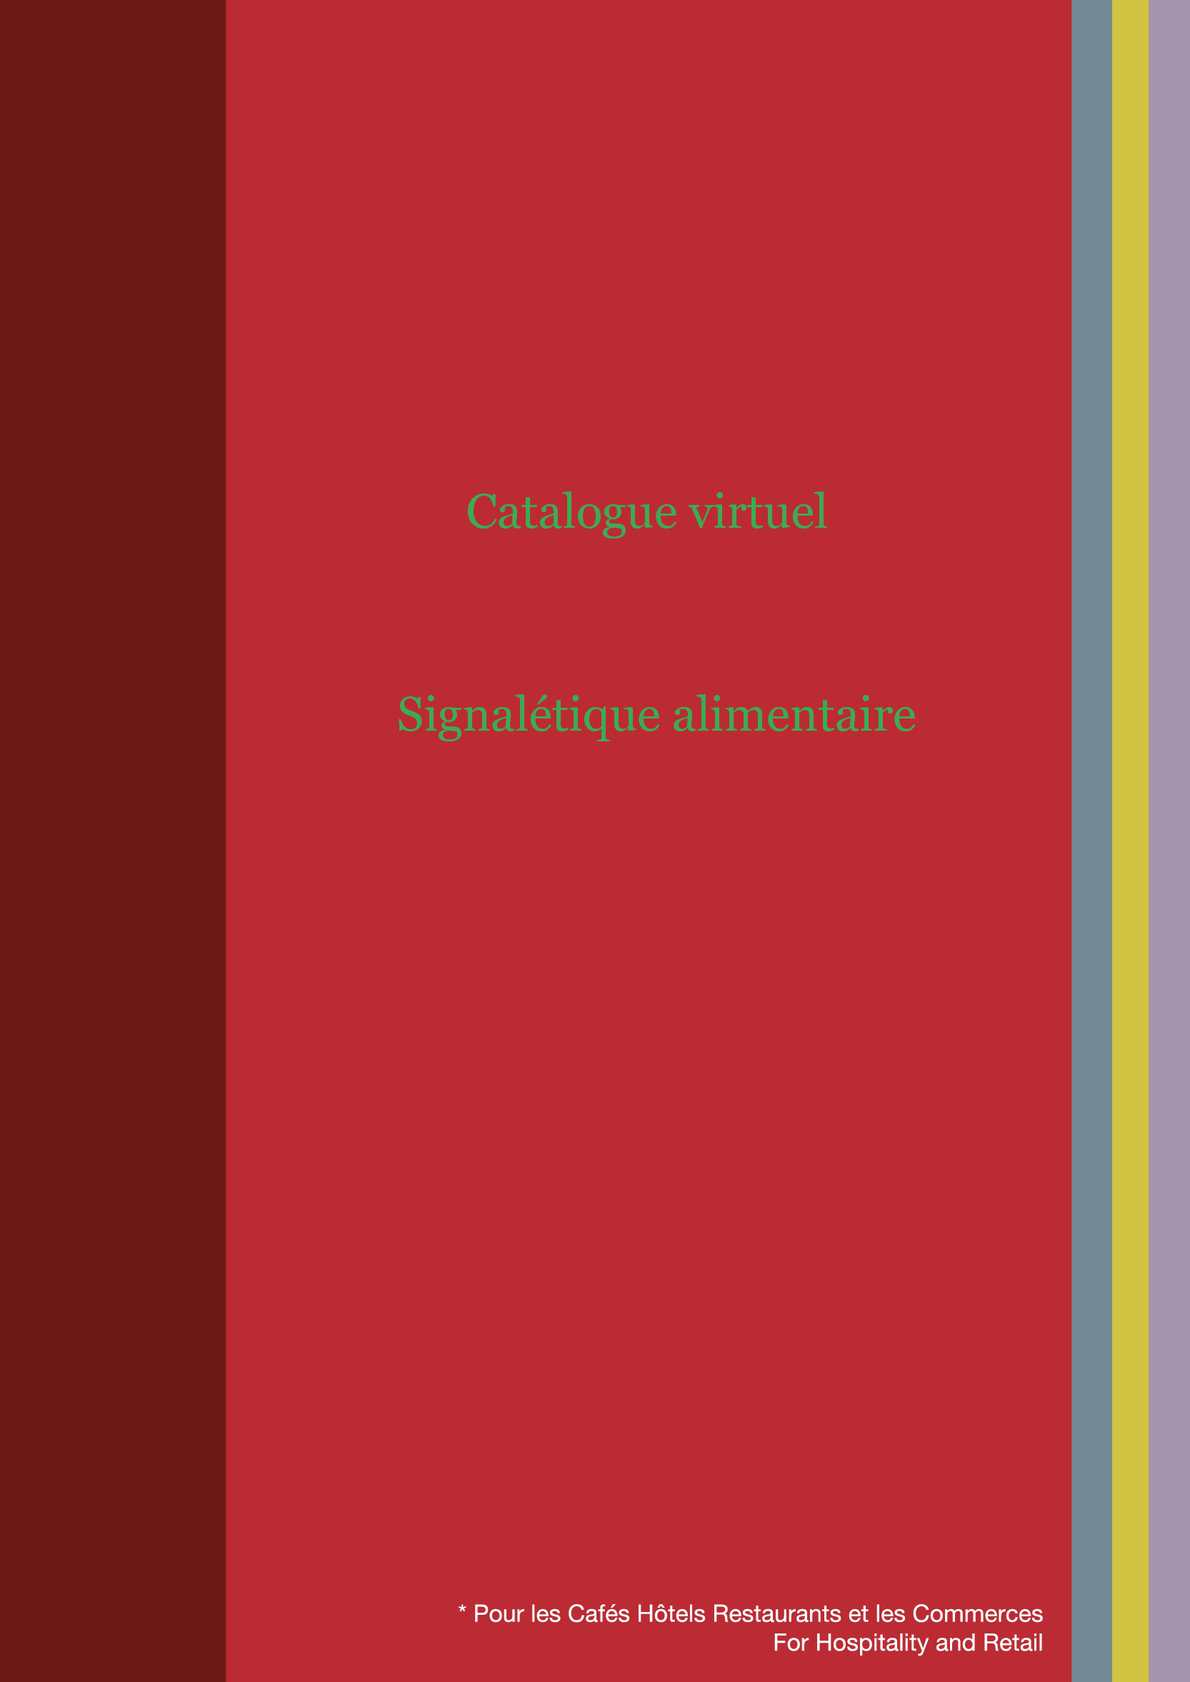 Catalogue virtuel de la signalisation alimentaire